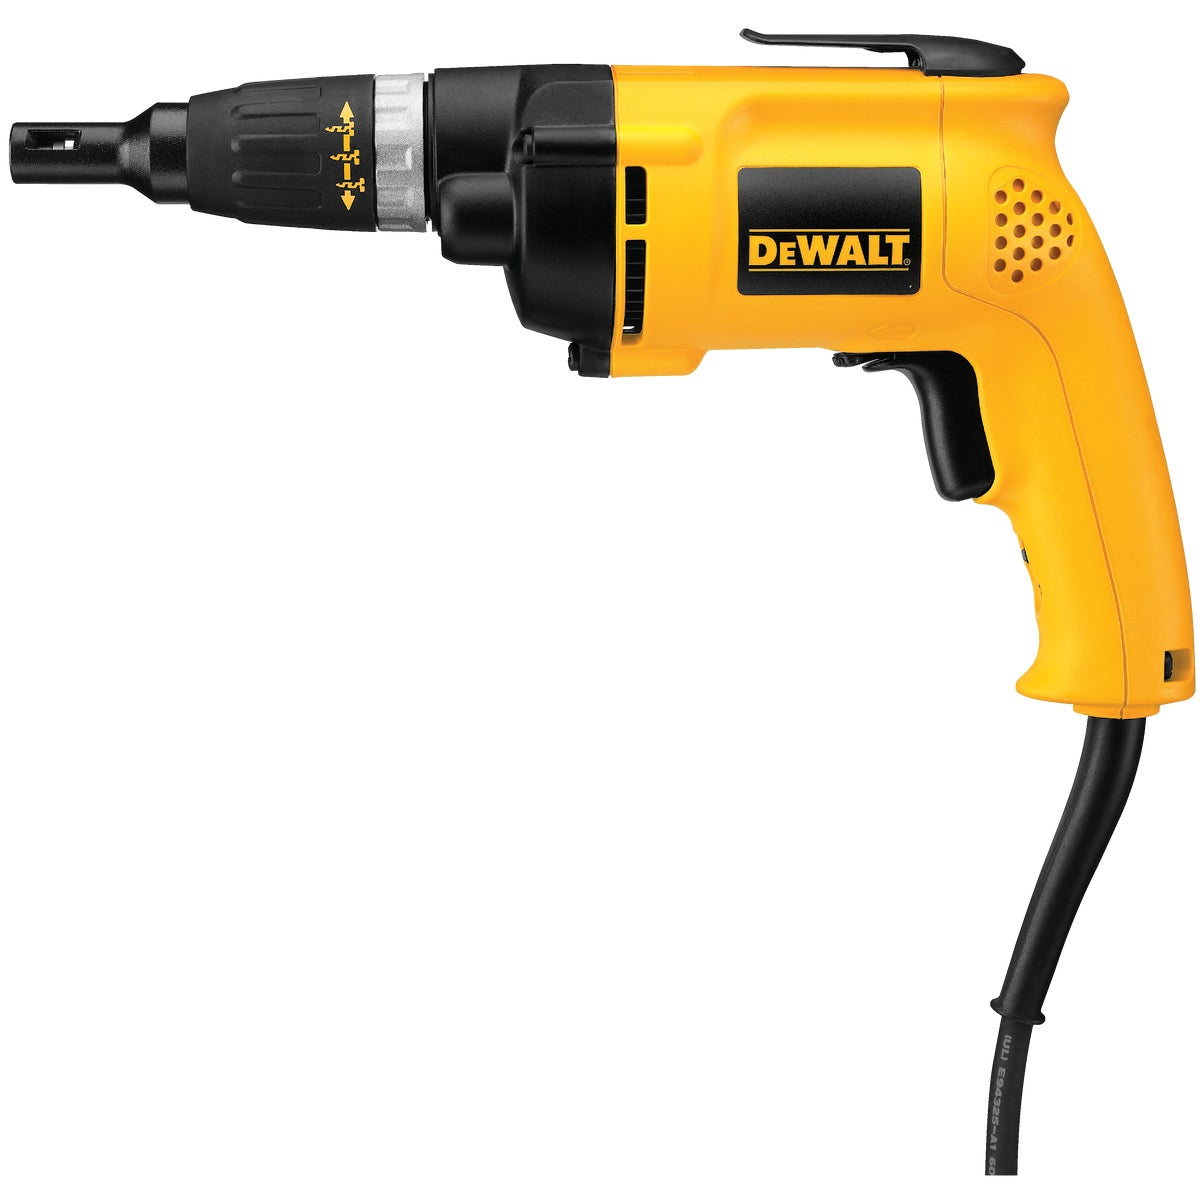 6.2A DECK SCREWDRIVER - DW257 by DeWalt